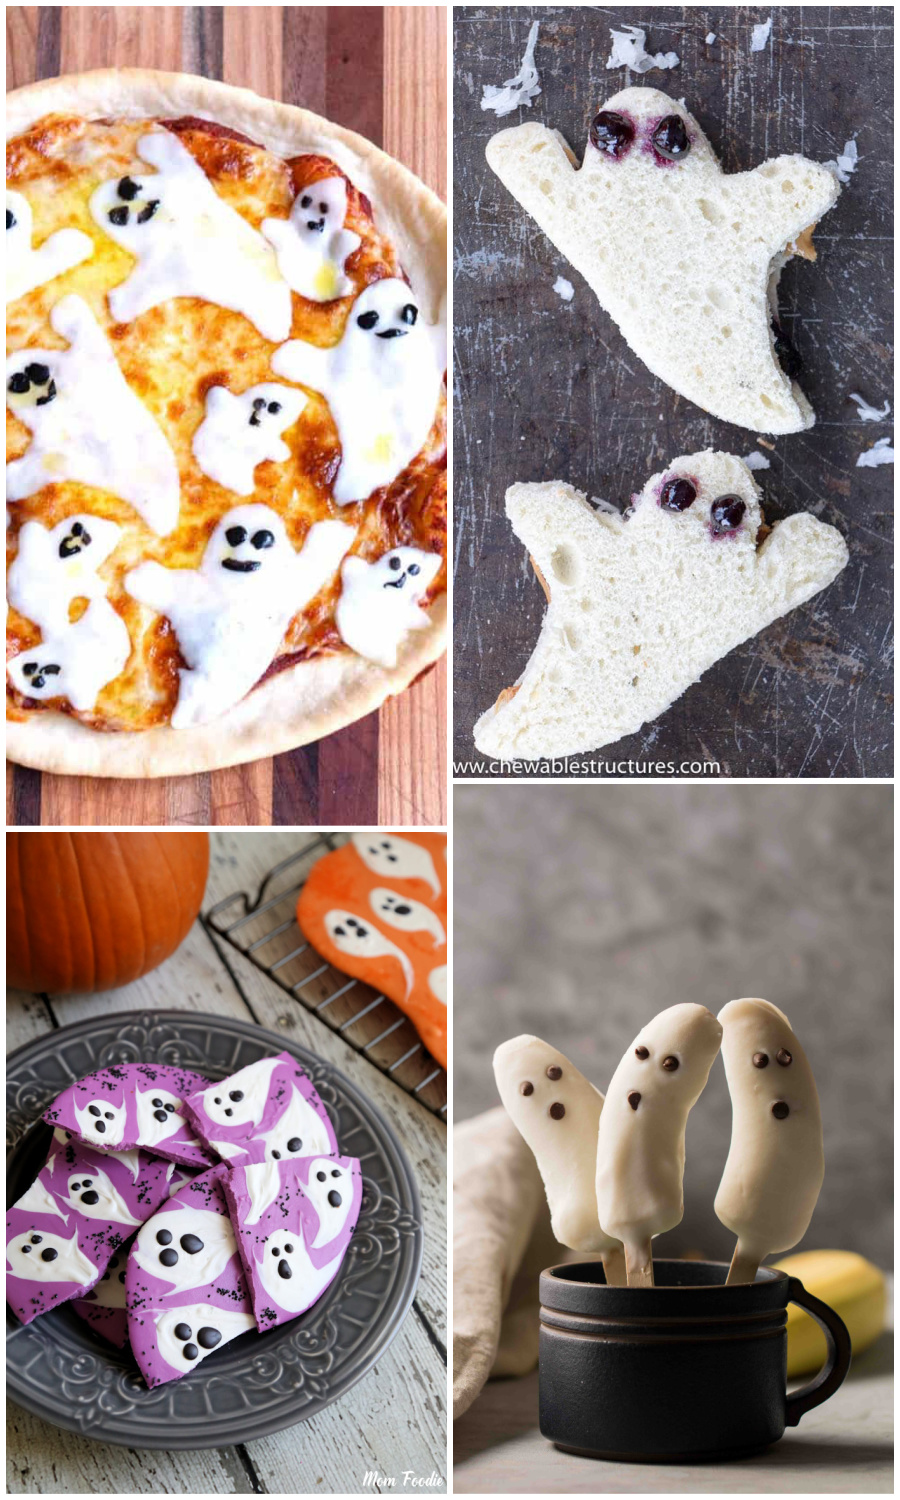 Ghost-themed Halloween dinner: Pizza at Pudge Factor, Sandwiches at Chewable Structures, Chocolate Bark at Mom Foodie and Bananas at Lifestyle of a Foodie